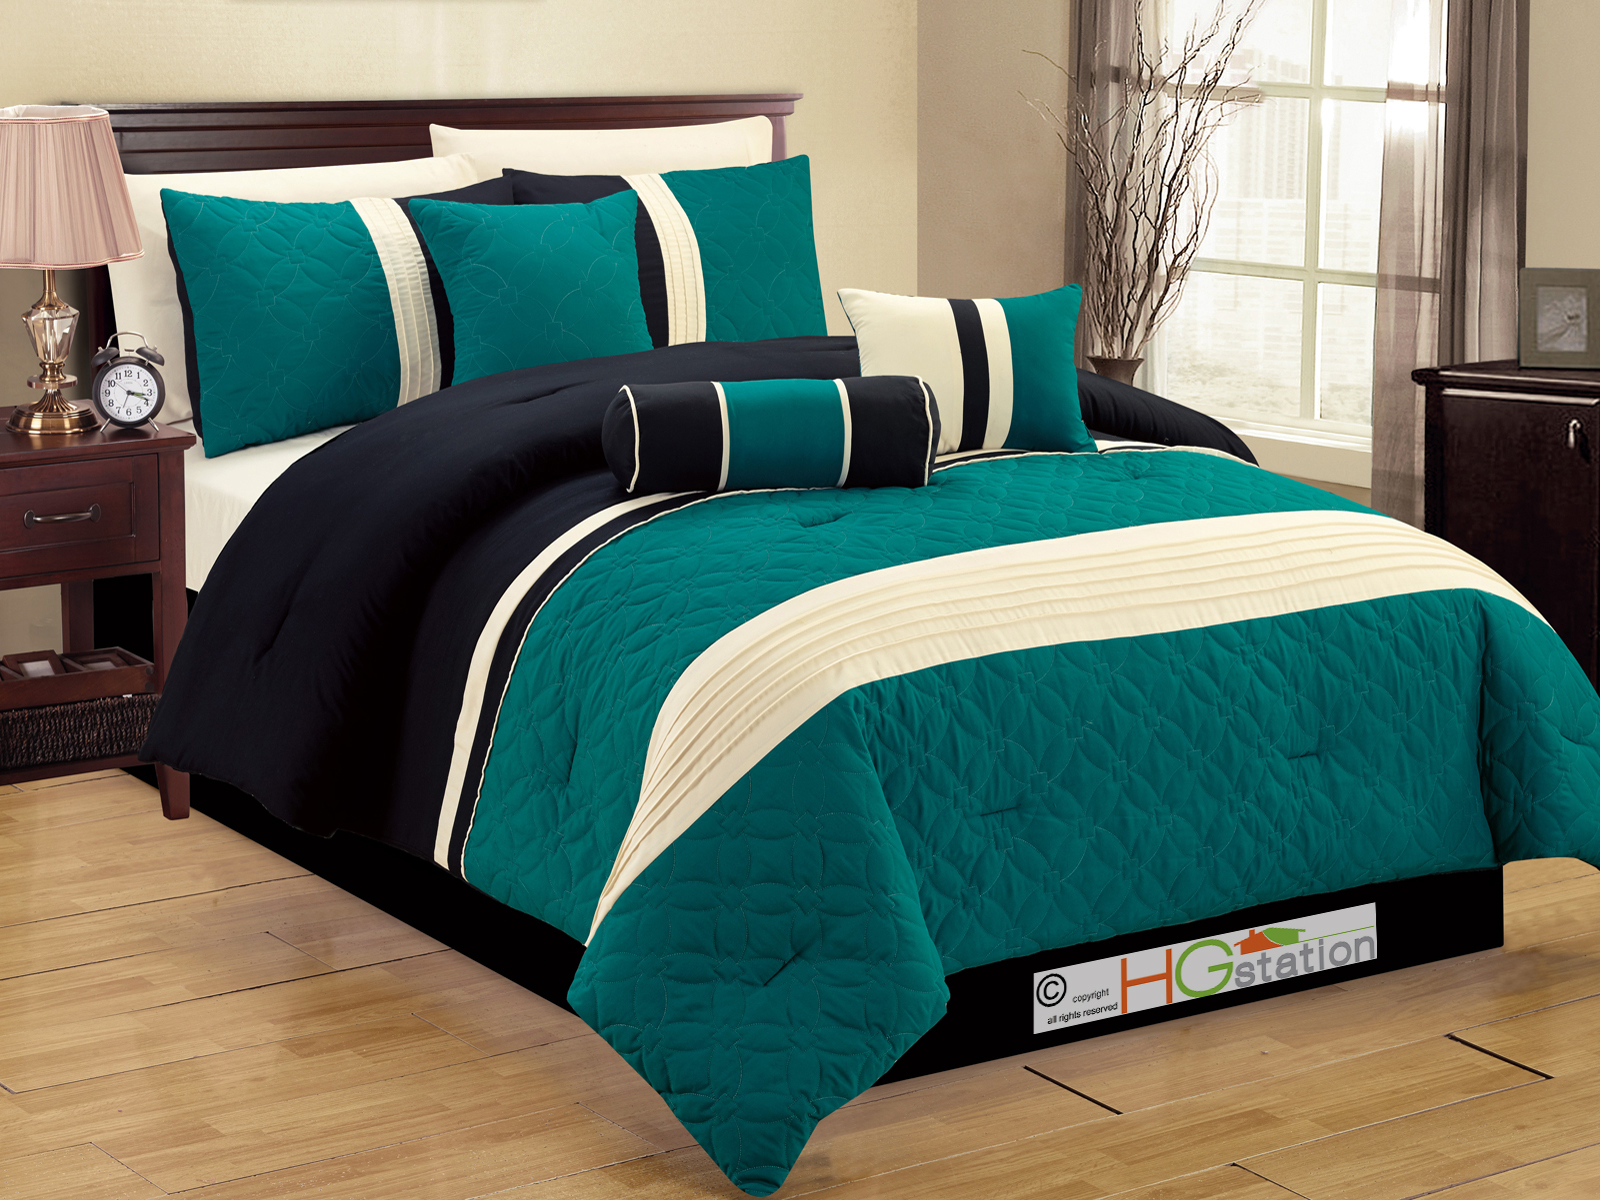 HG station 7-Pc Quilted Geometric Medallion Pleated Striped Comforter Set Queen Teal Blue-Green Black Ivory